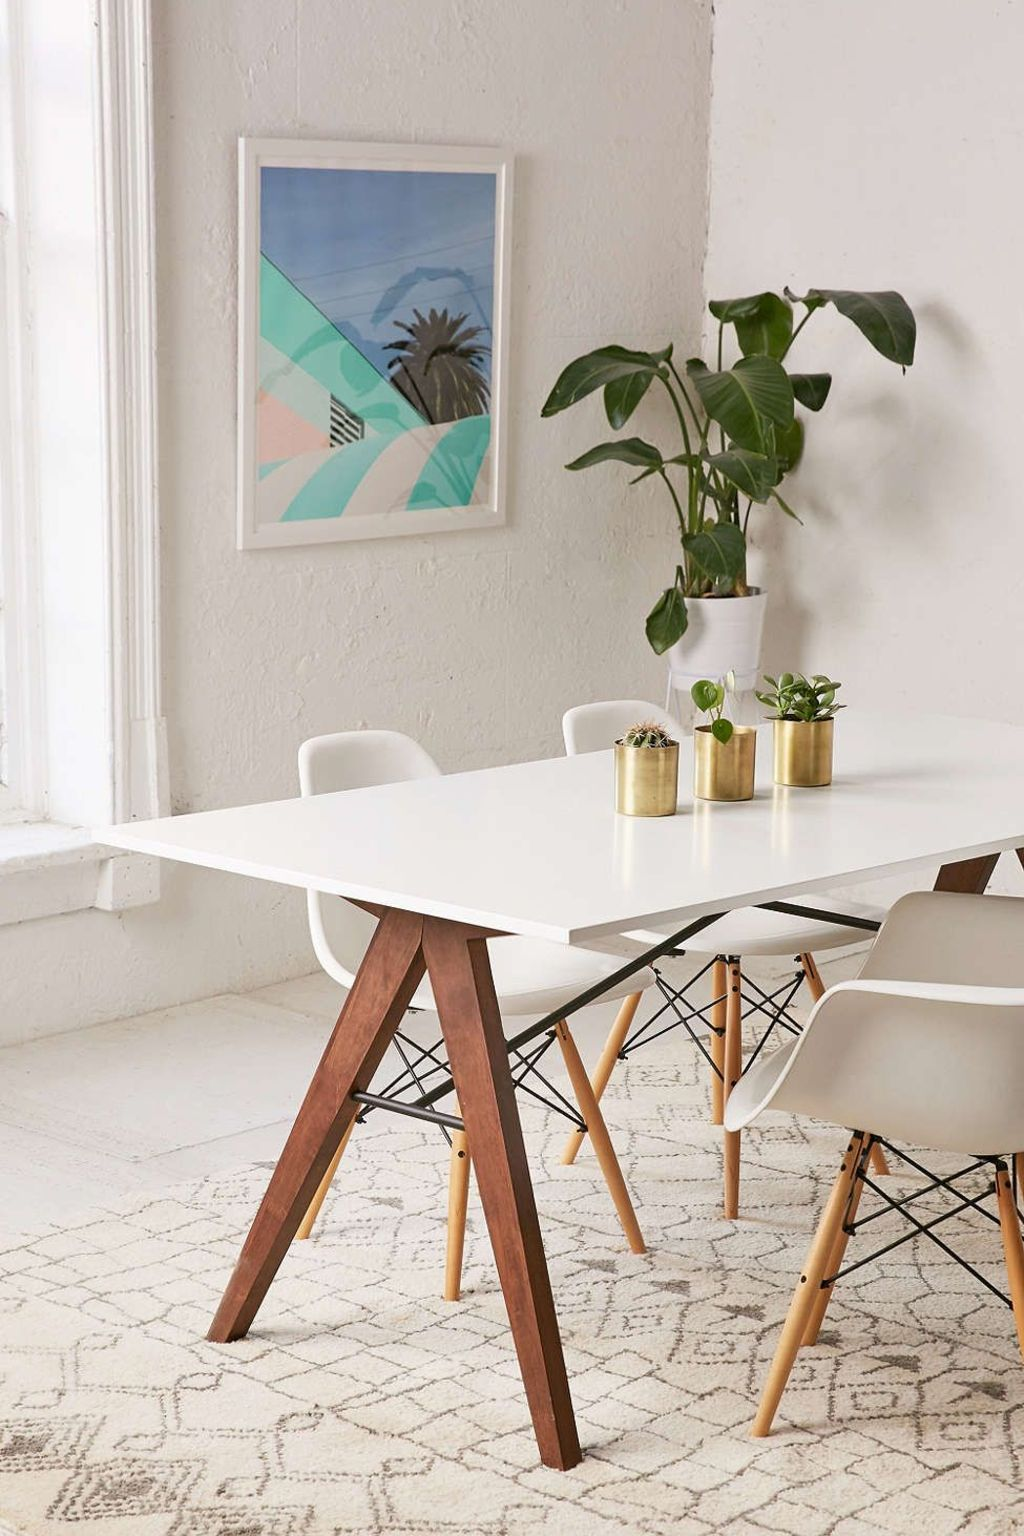 https://elonahome.com/wp-content/uploads/2019/01/Exotic-Wooden-Table-Designs-for-Modern-Traditional-Dining-Room-Part-15.jpg